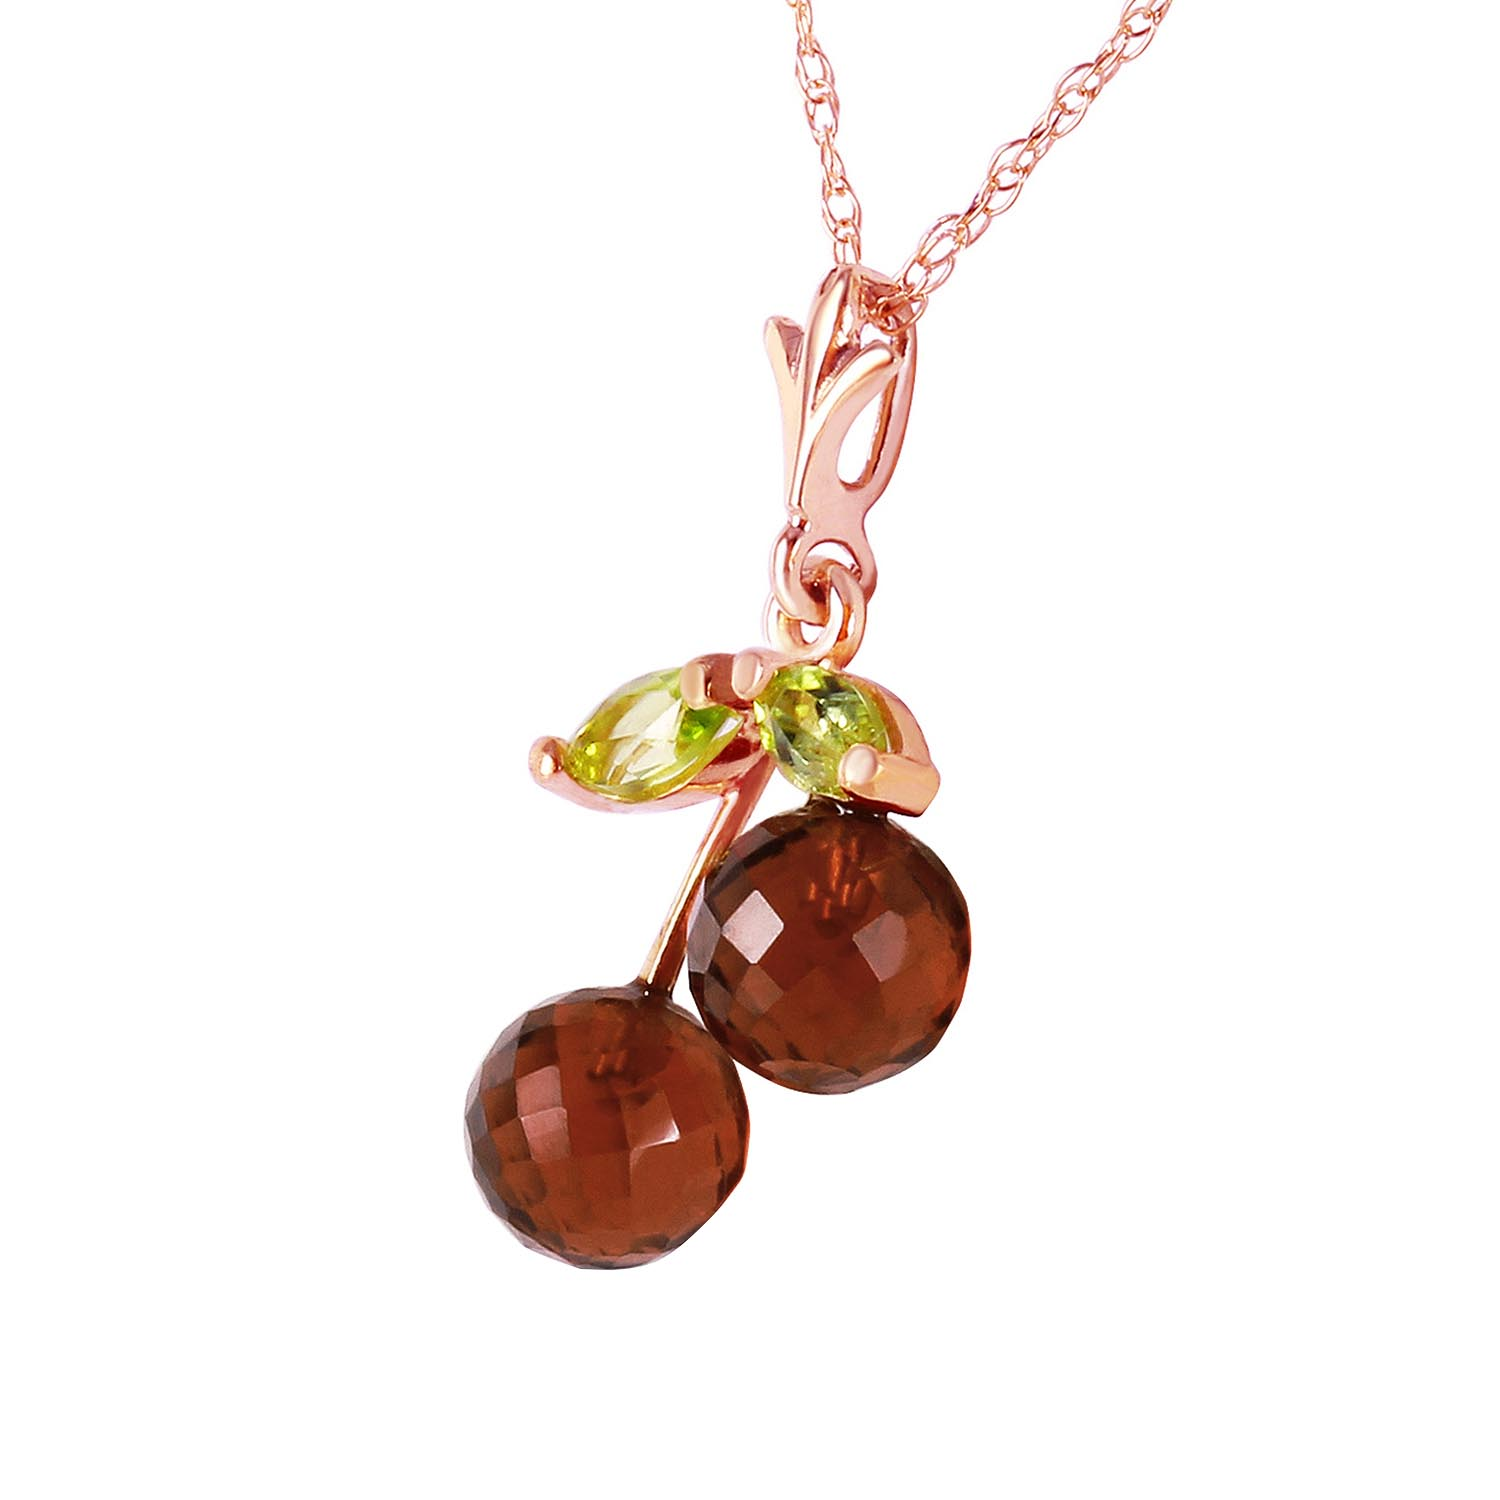 Garnet and Peridot Cherry Drop Pendant Necklace 1.45ctw in 9ct Rose Gold